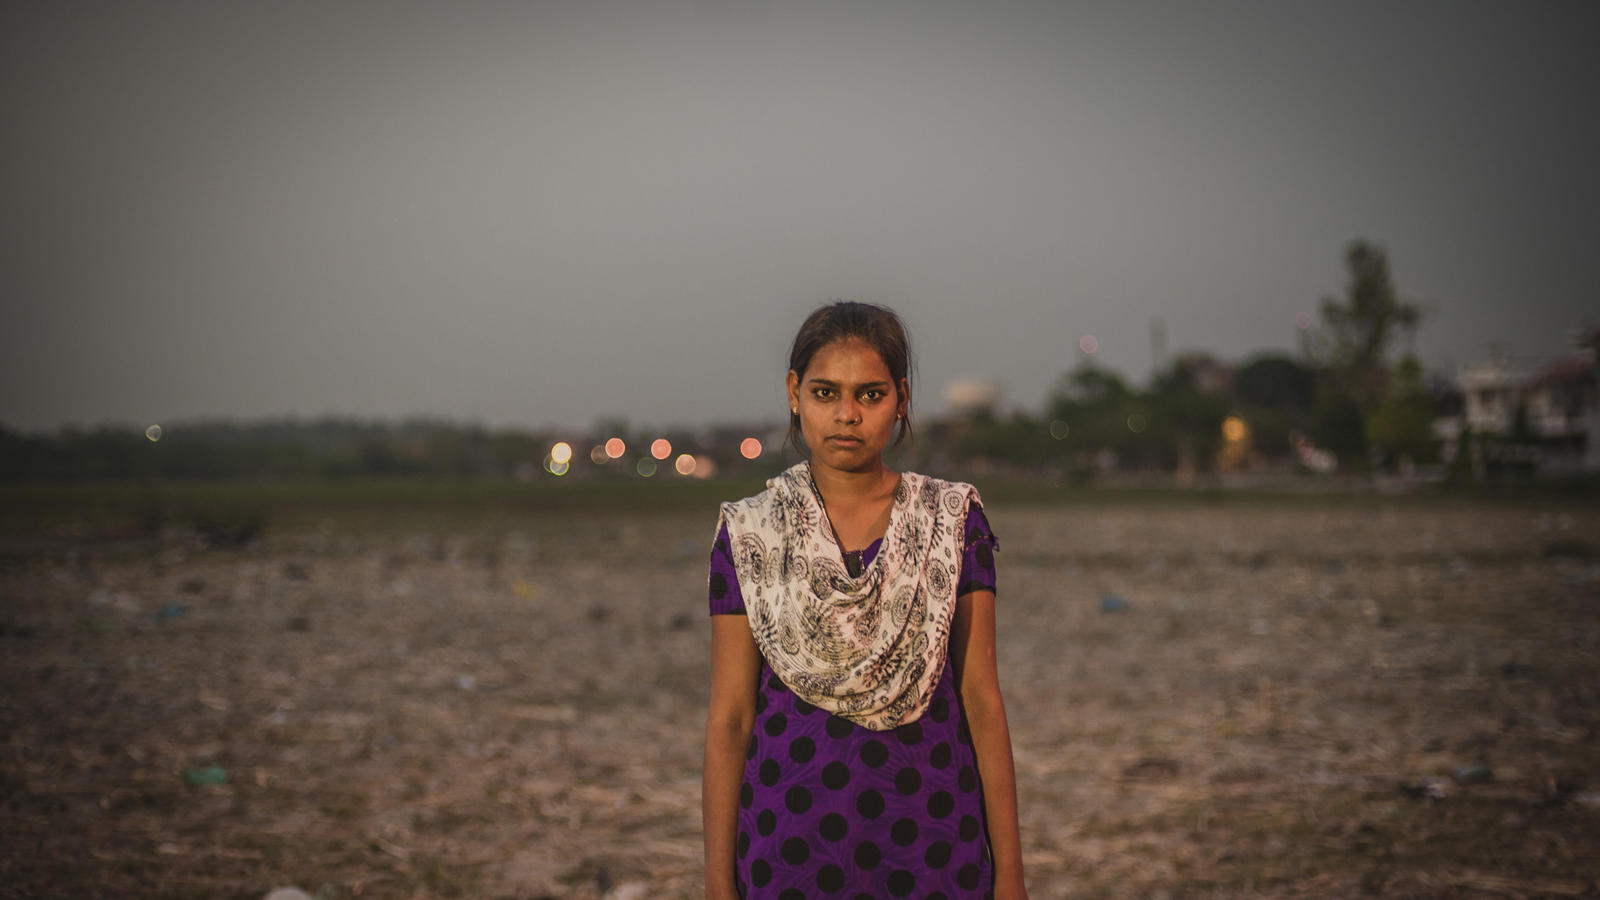 Kajal Gautam, 16, stands in front of a large open defacation area, Nihura Basti, Kanpur, India, 2014.